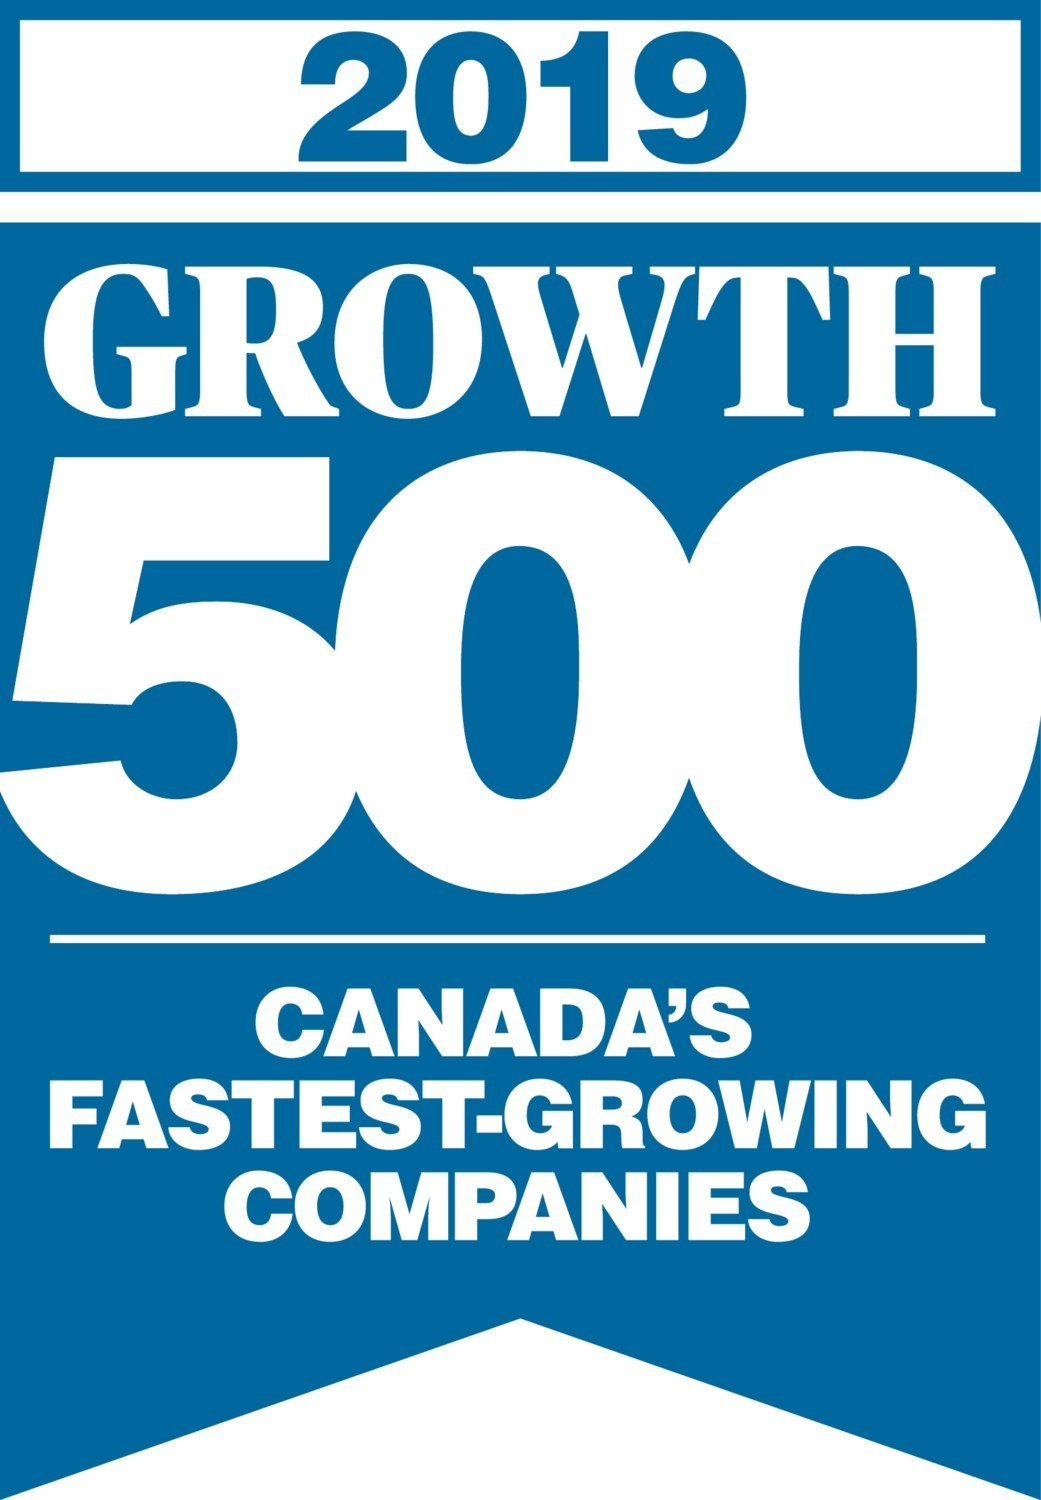 Growth 500 - One of Canada's fastest growing companies